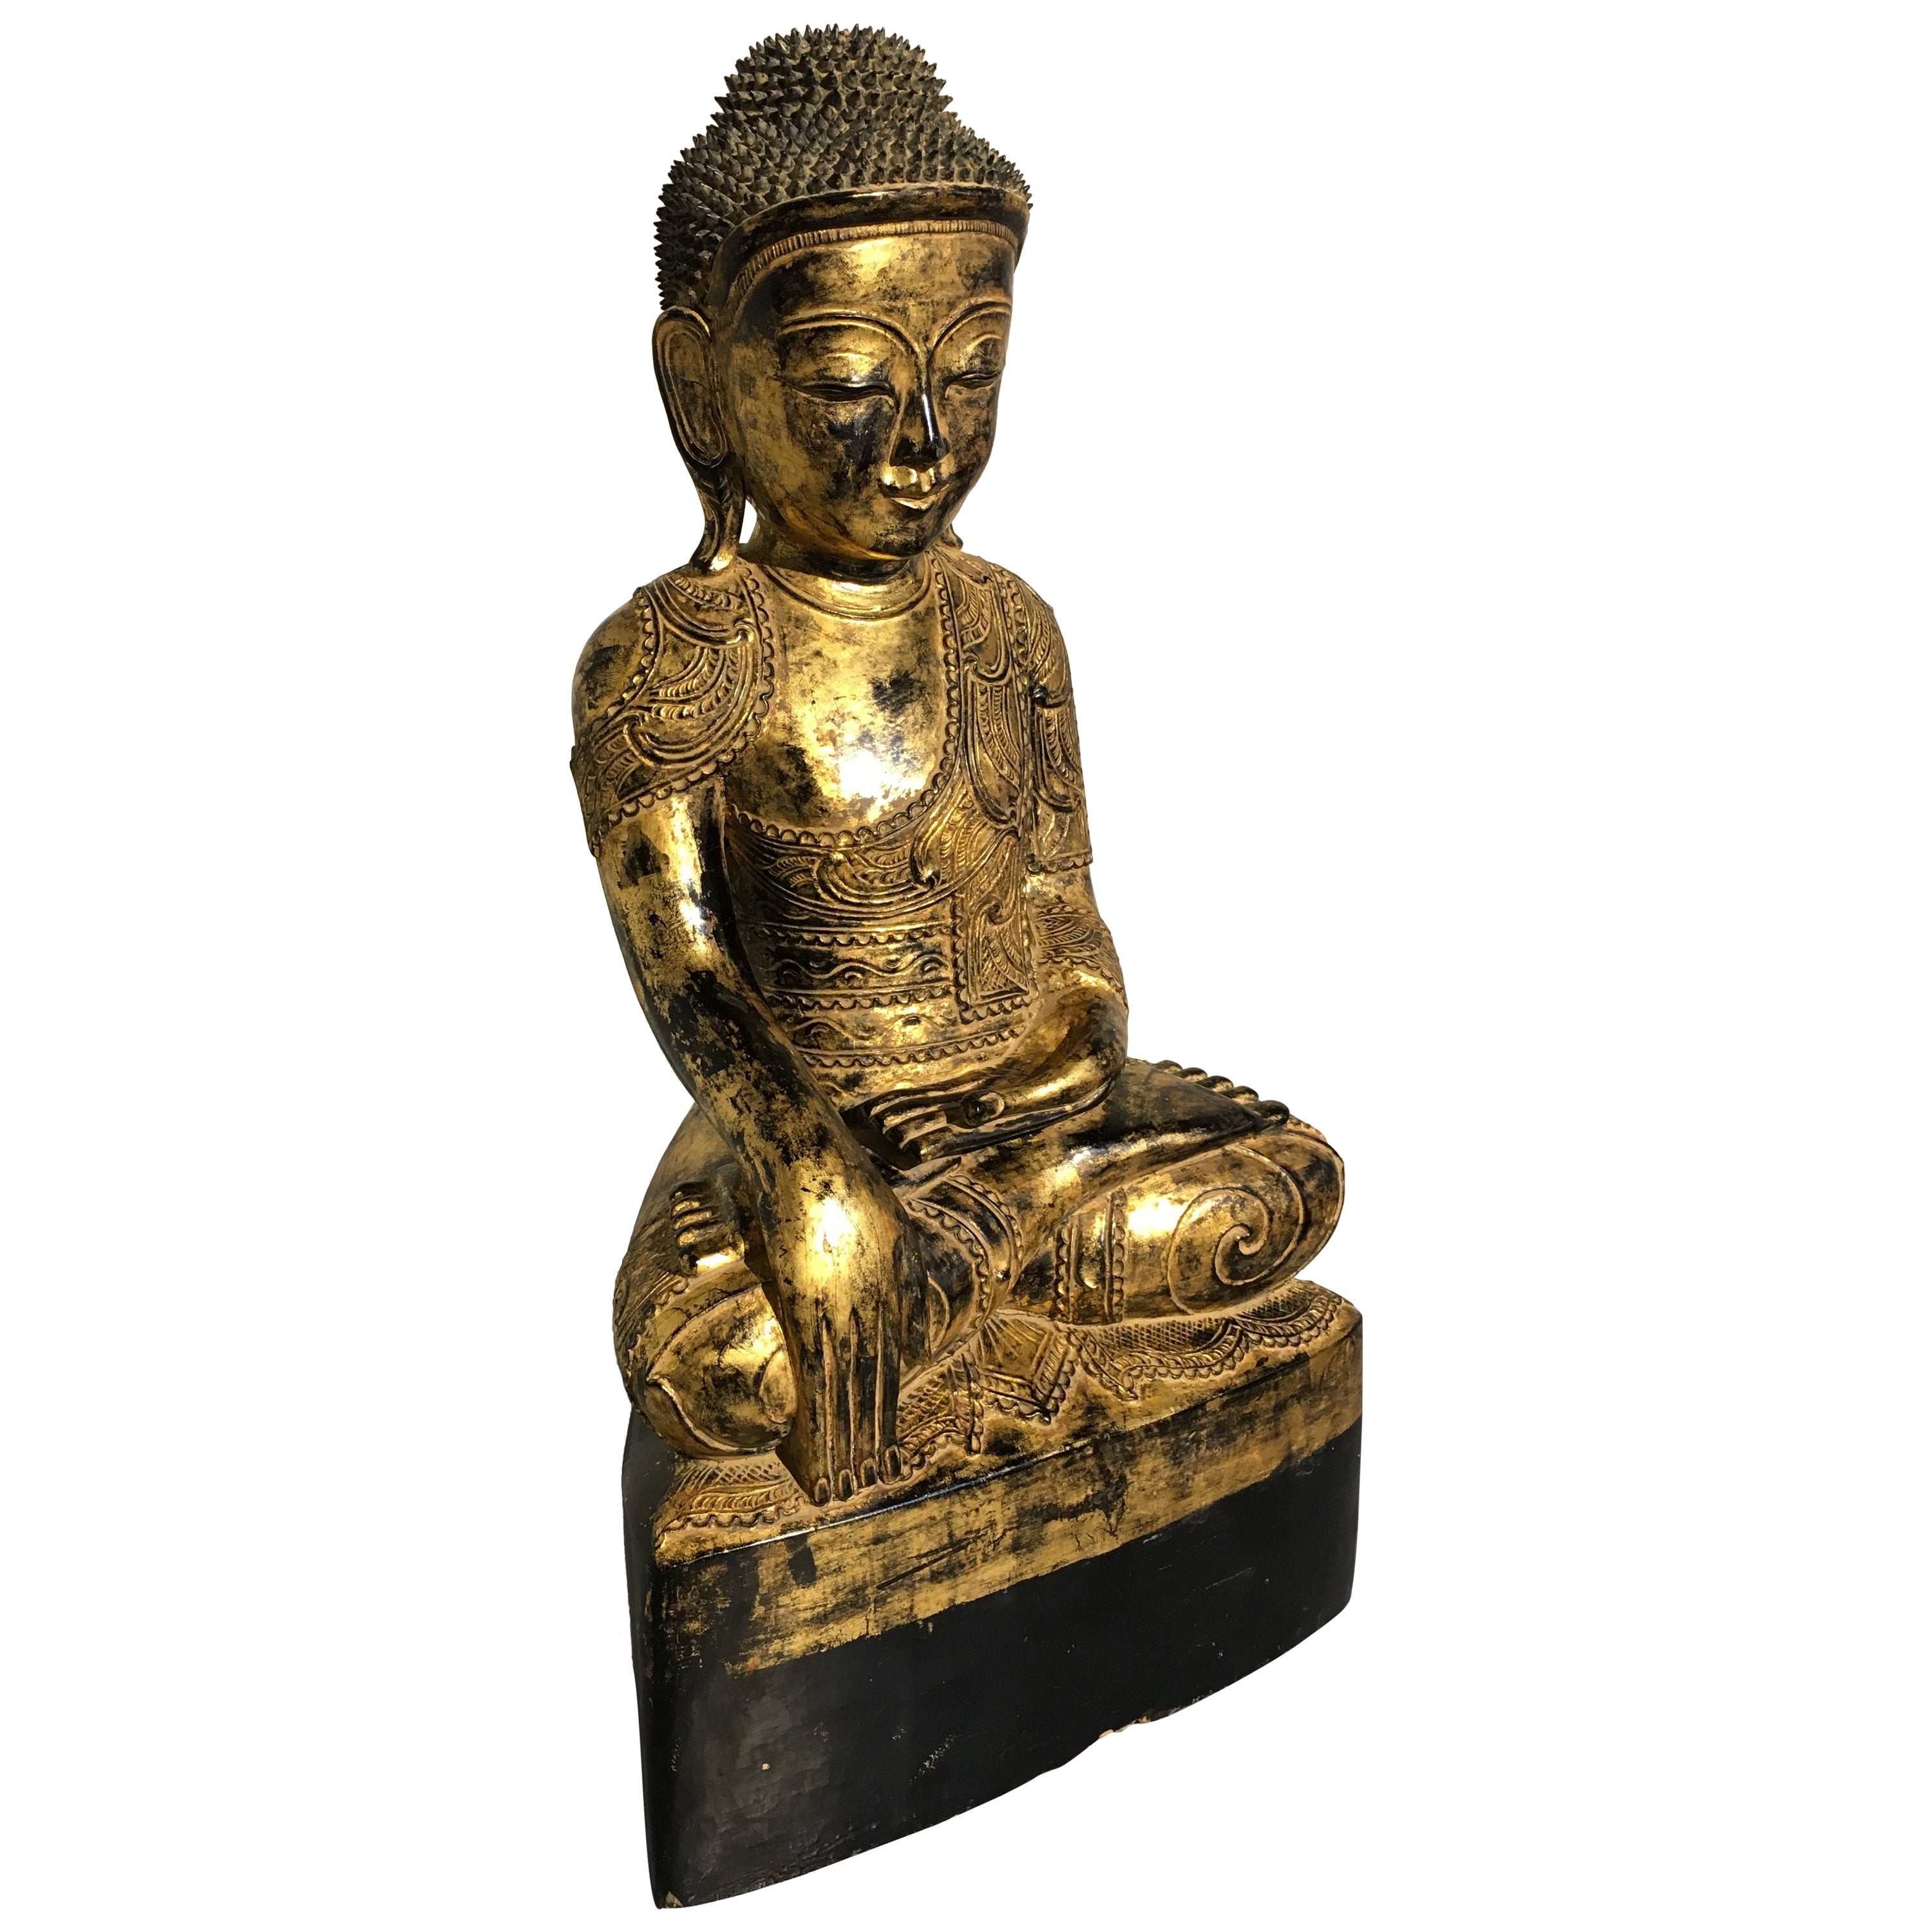 Burmese Ava Period Carved, Lacquered and Giltwood Buddha, Late 18th Century